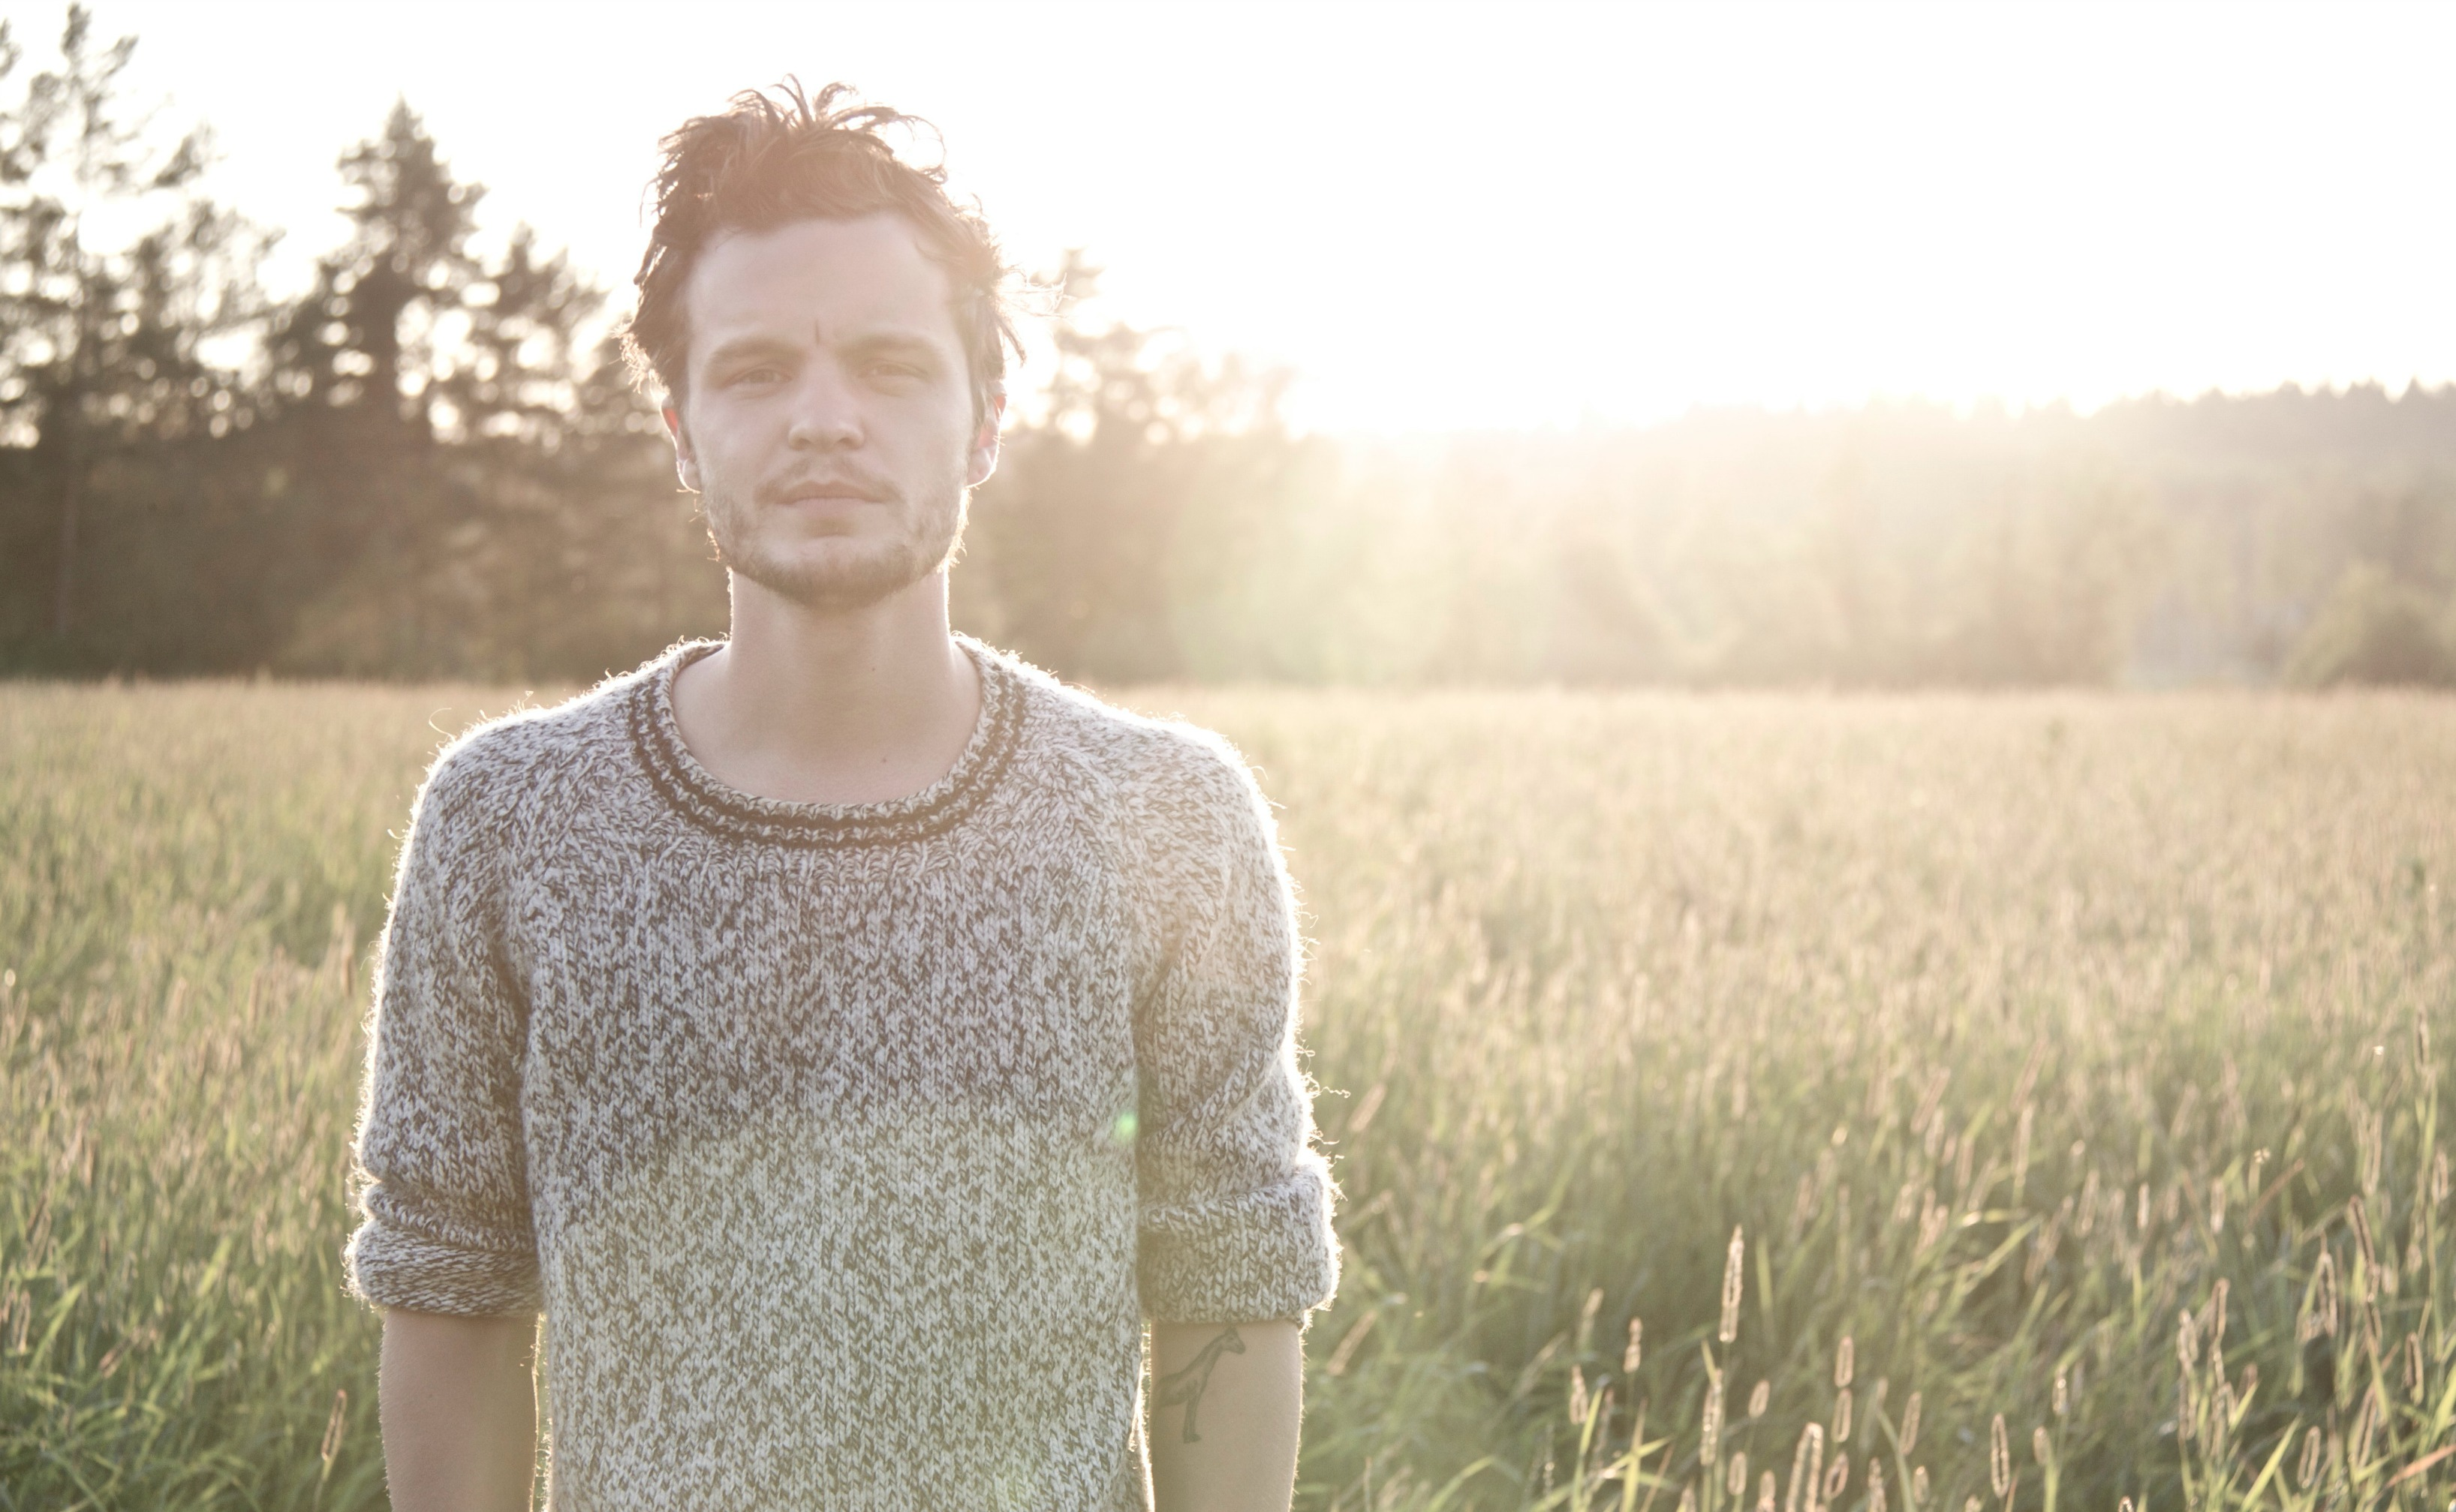 The Tallest Man On Earth 88